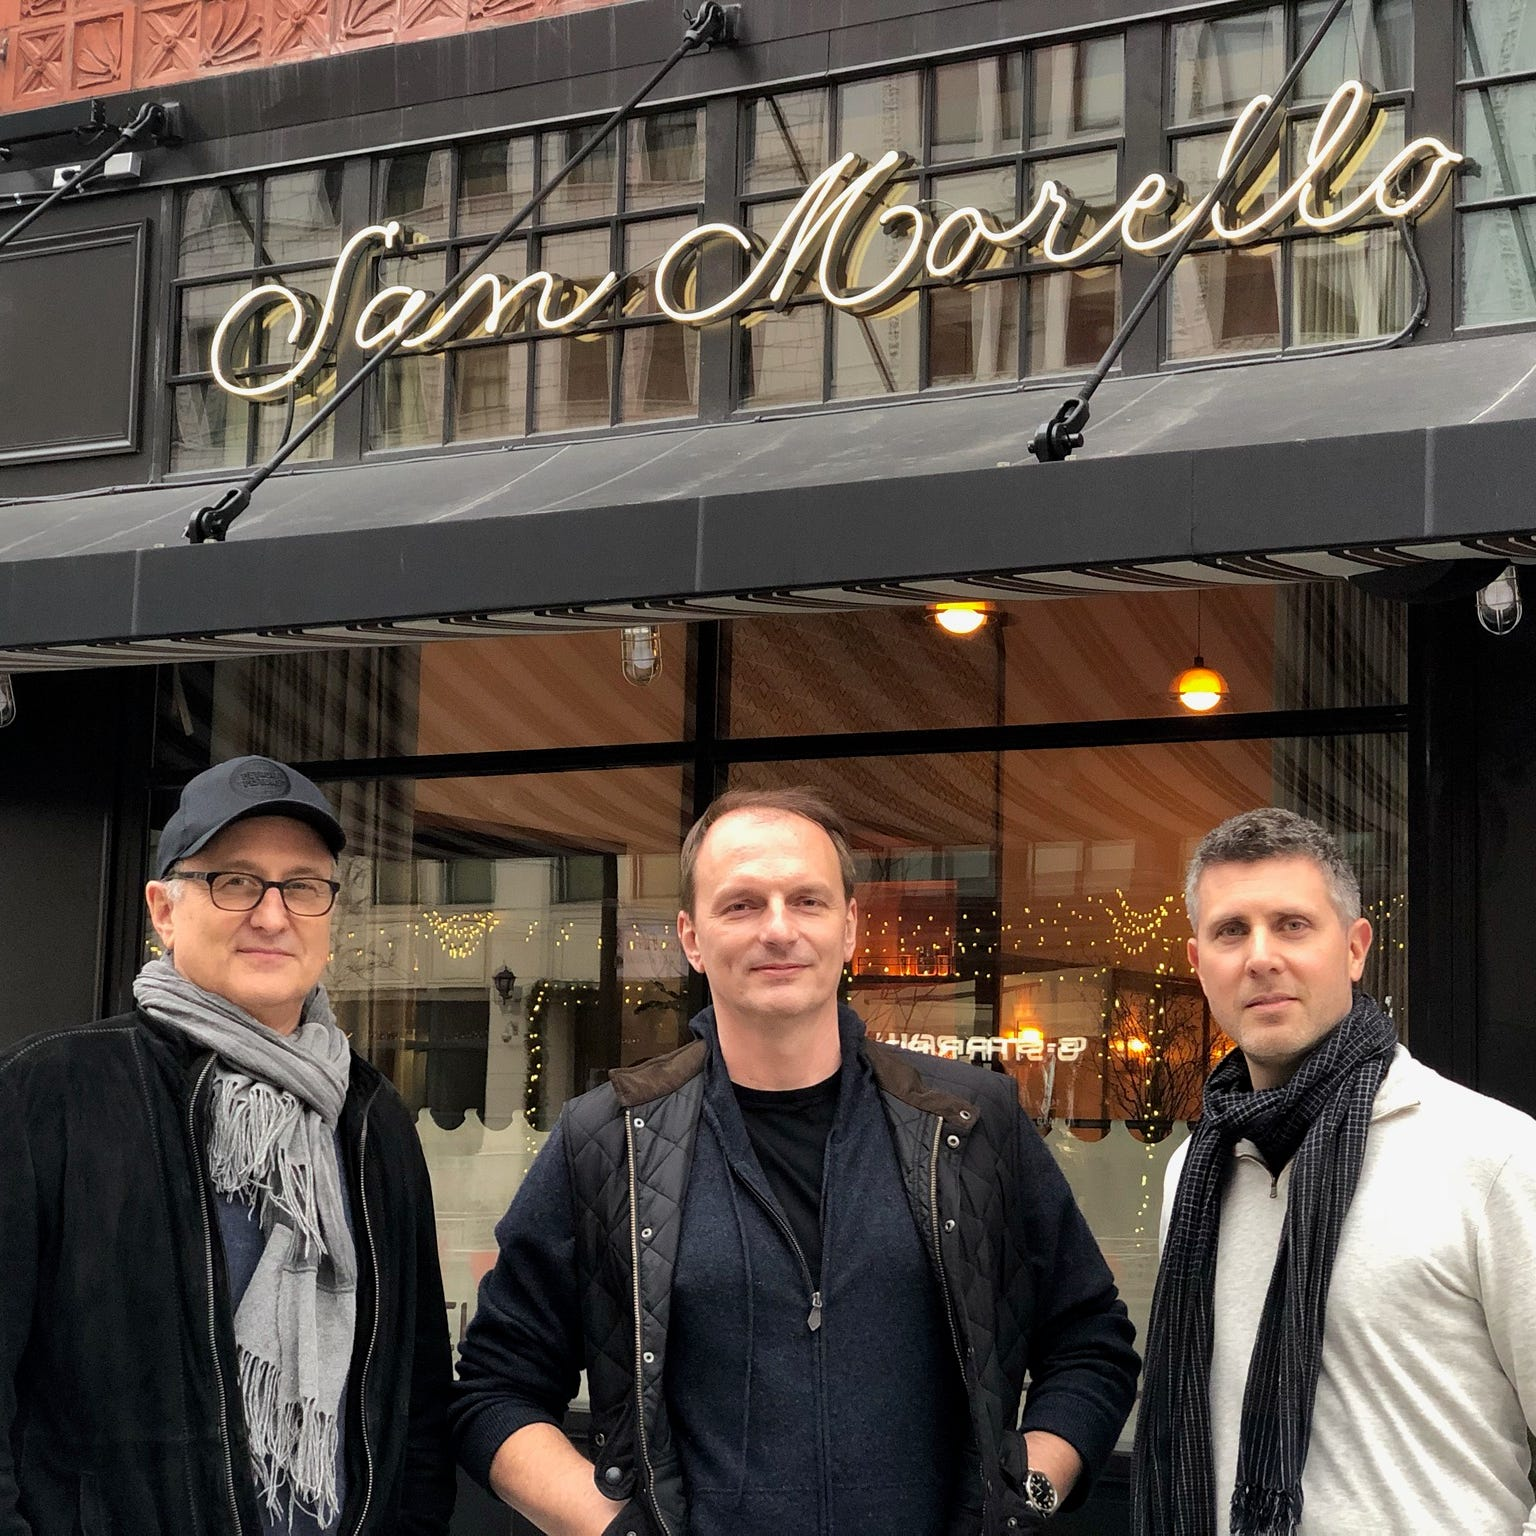 San Morello to open Tuesday inside Shinola Hotel